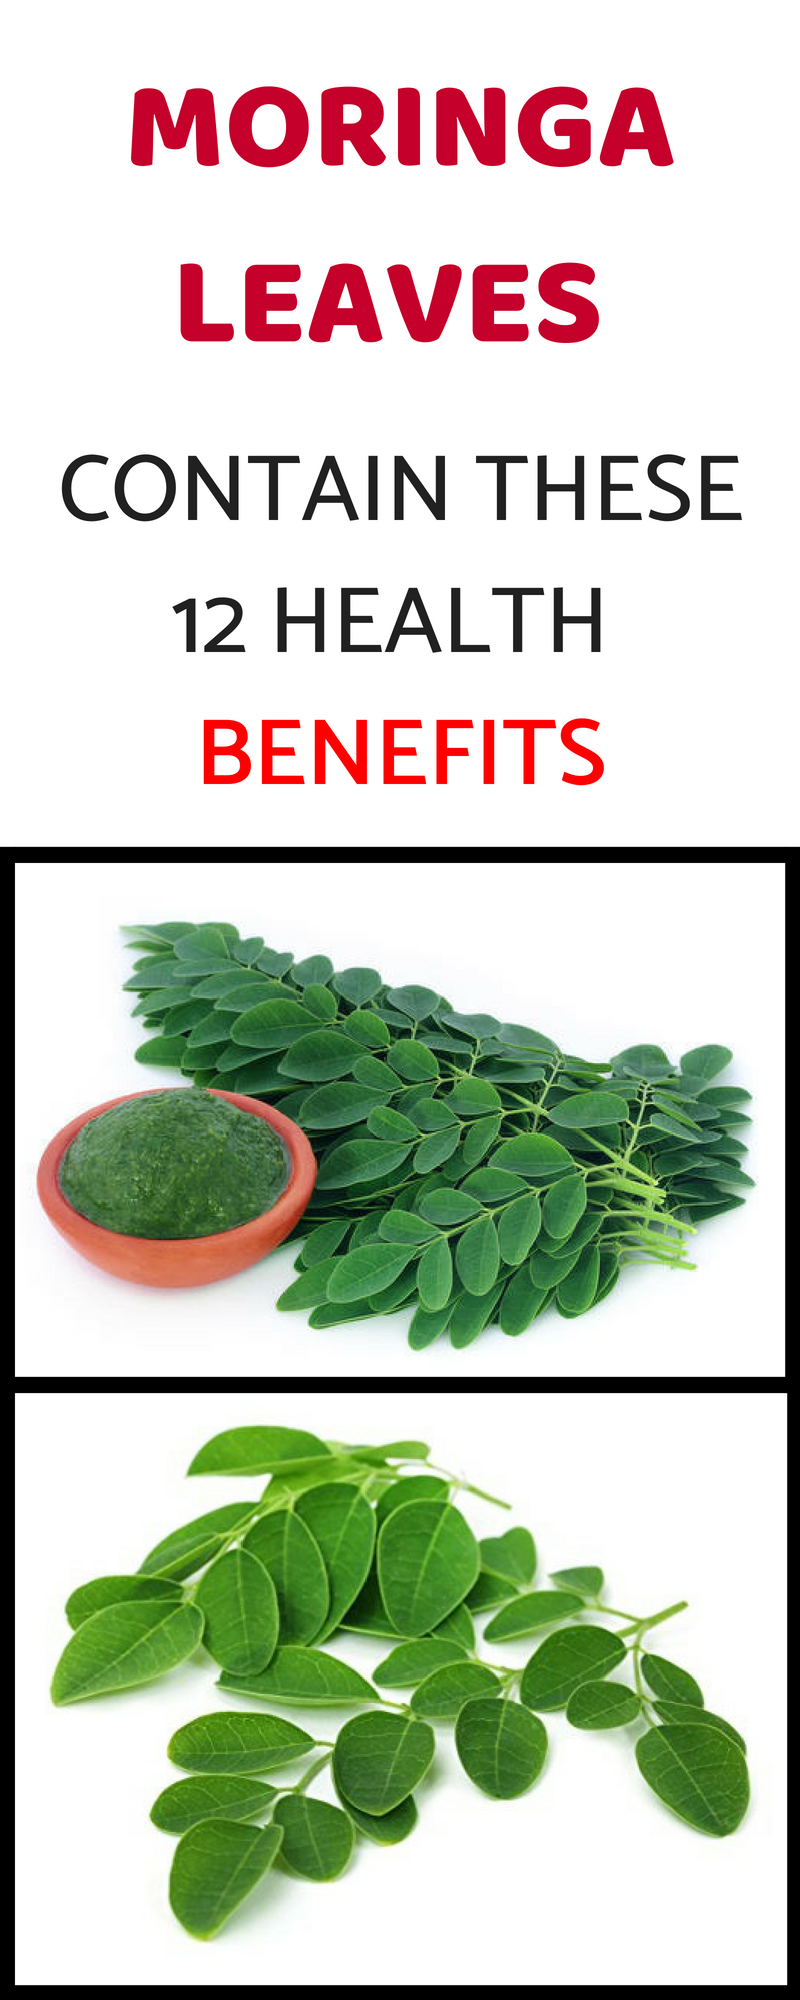 Moringa Leaves Contain These 12 Health Benefits Moringa Benefits Moringa Leaves Moringa